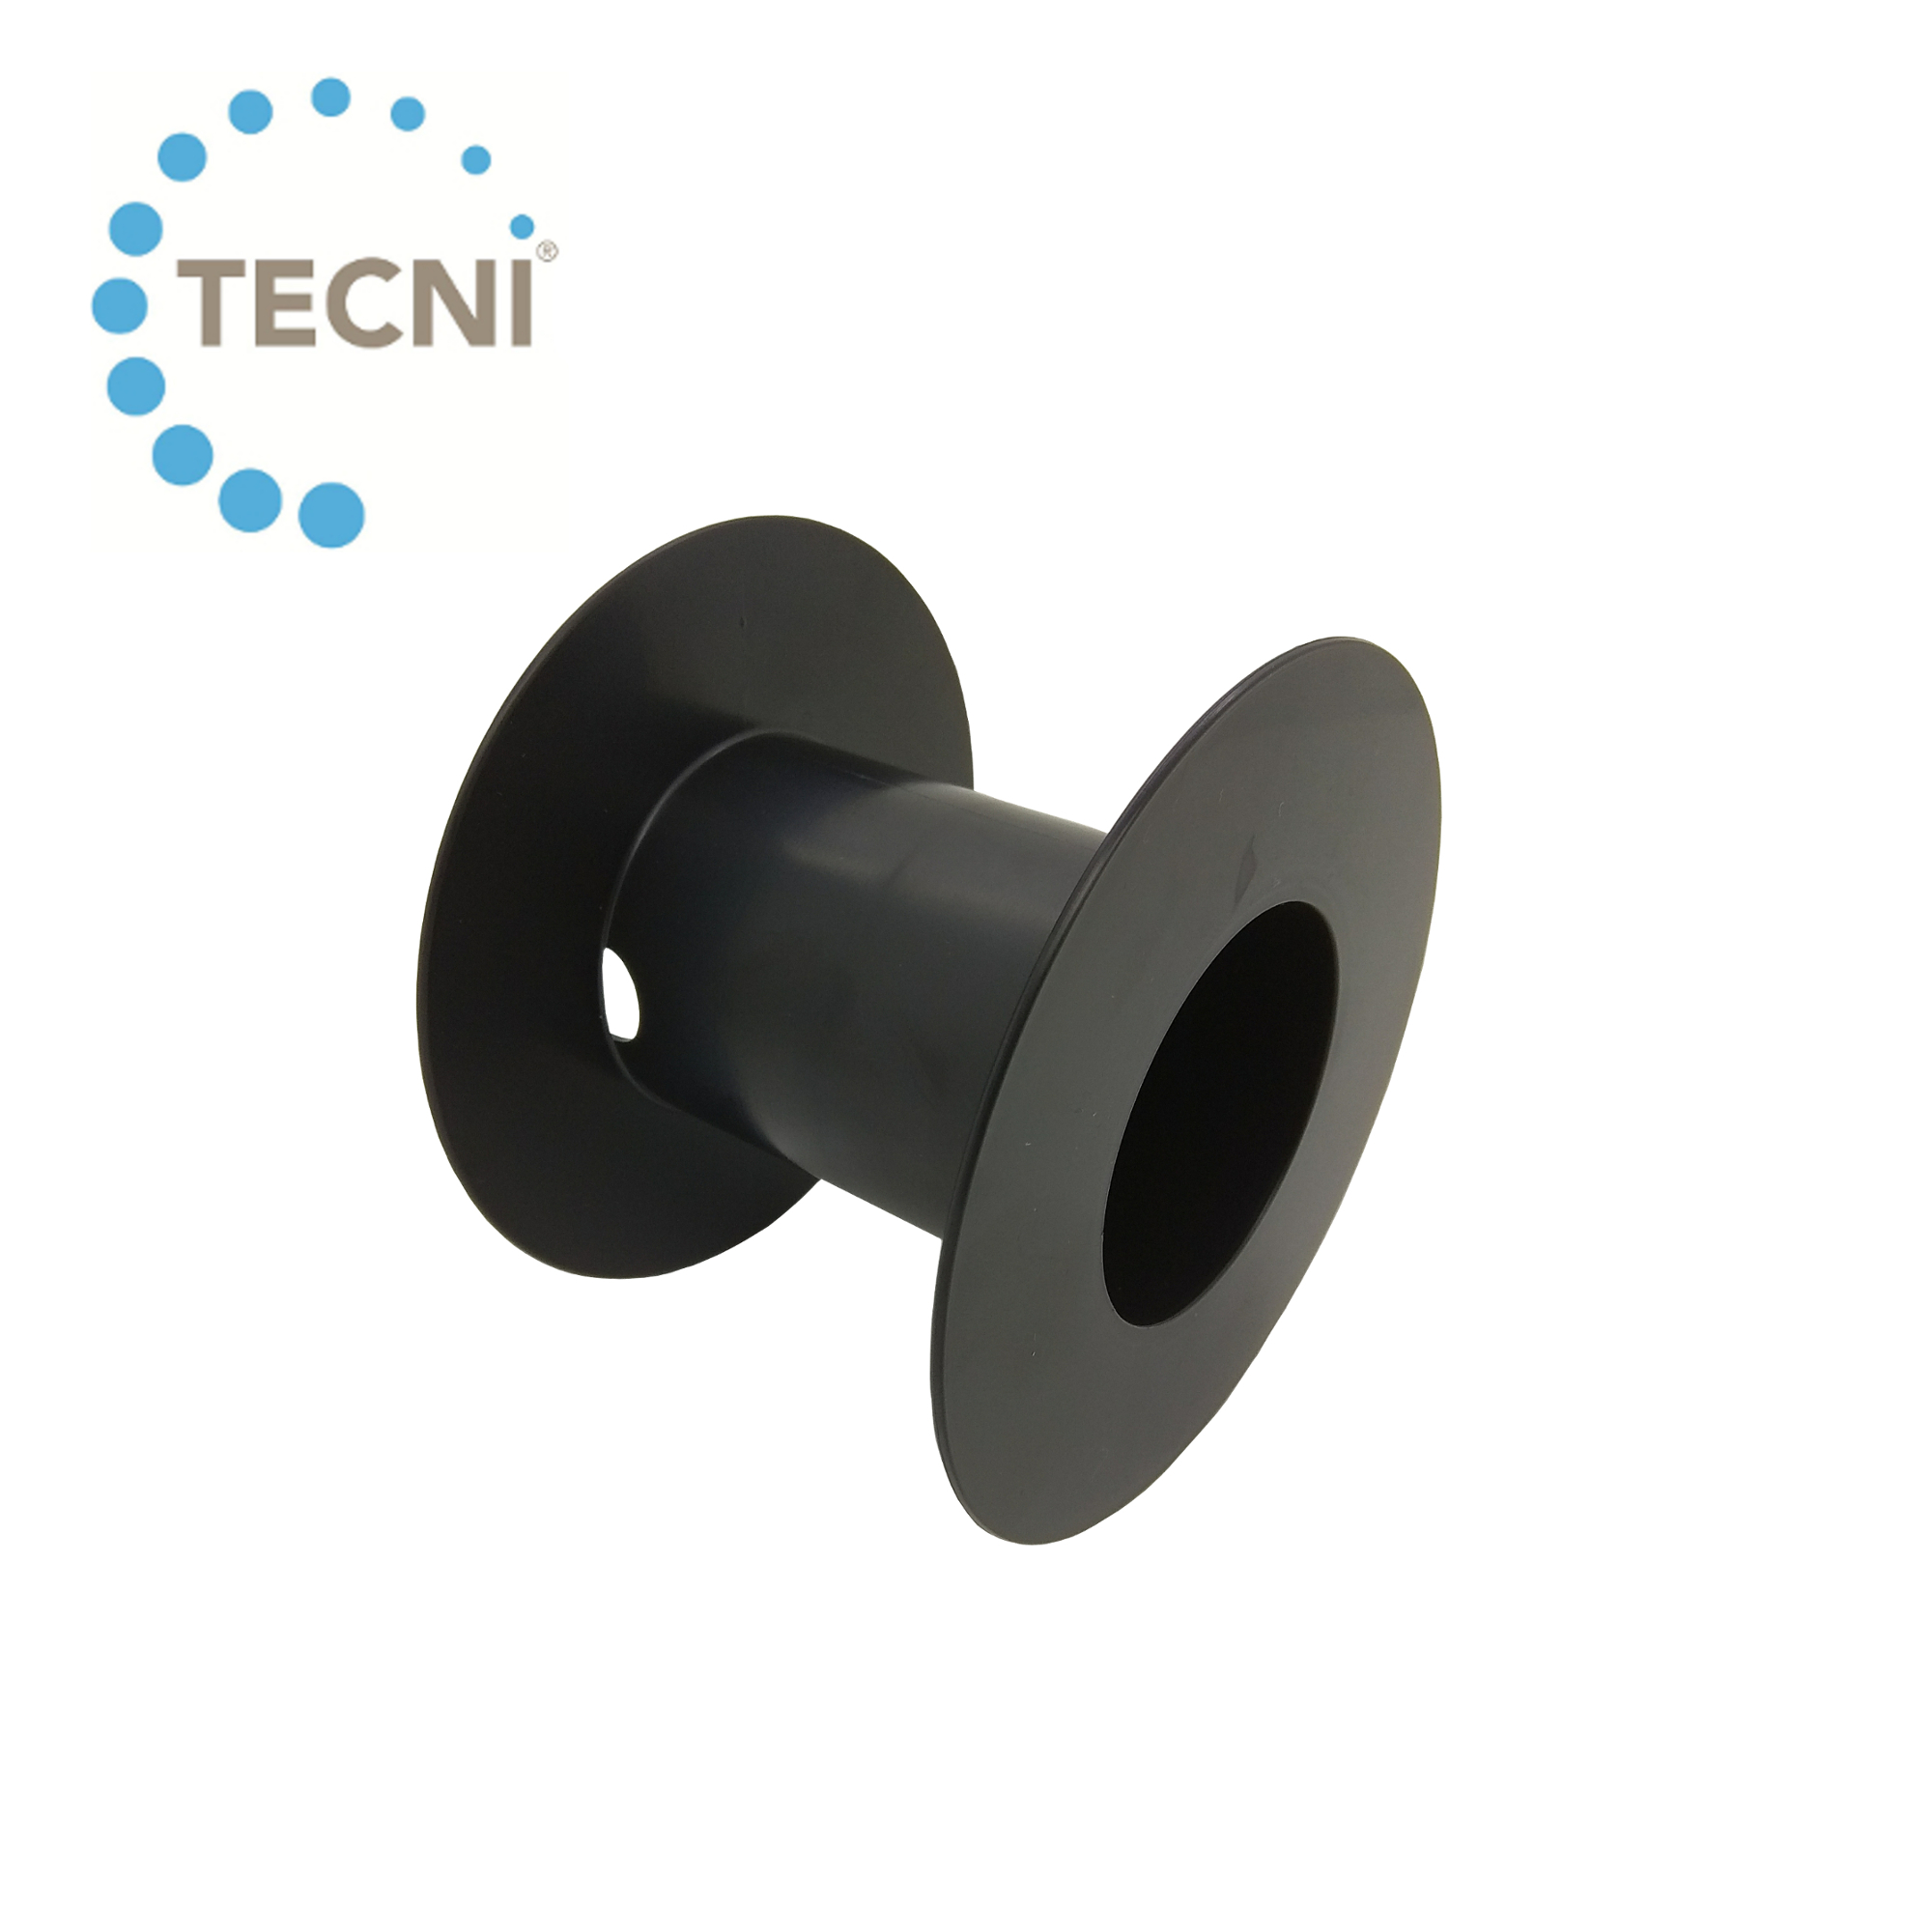 Plastic Reel for Cable 100mm x 70mm